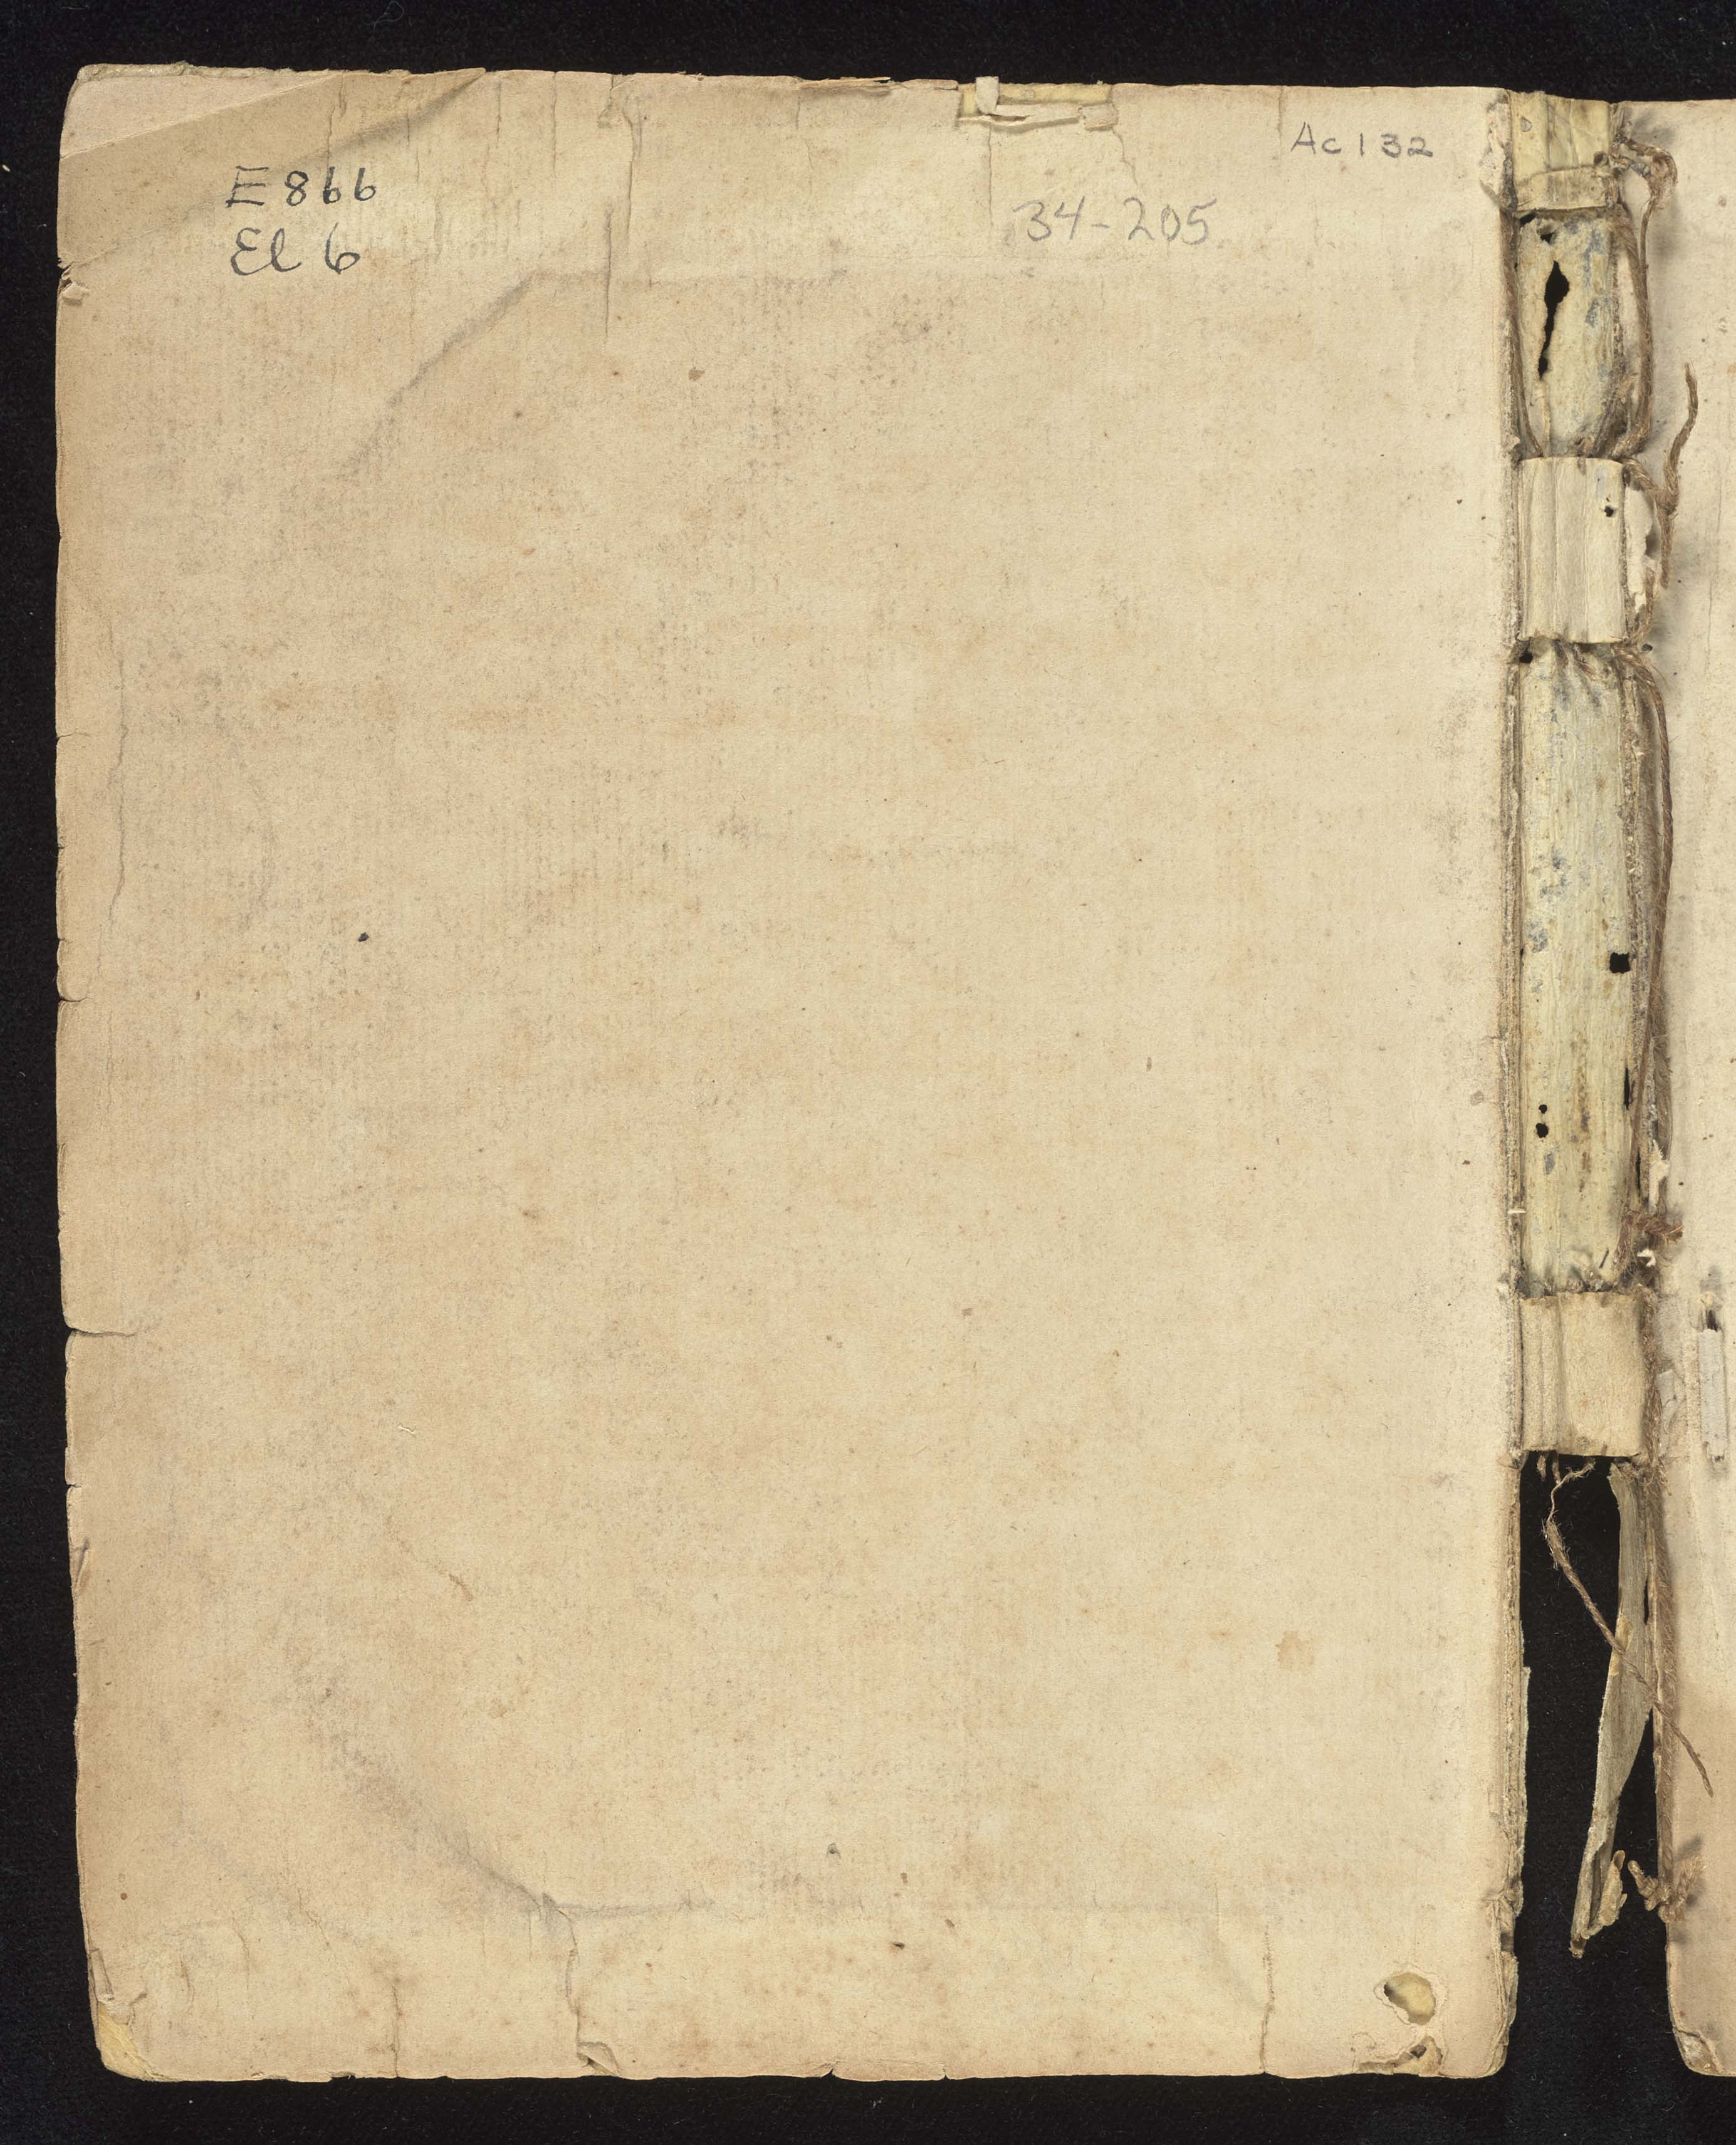 4th South Carolina Regiment Order Book, Inner Cover